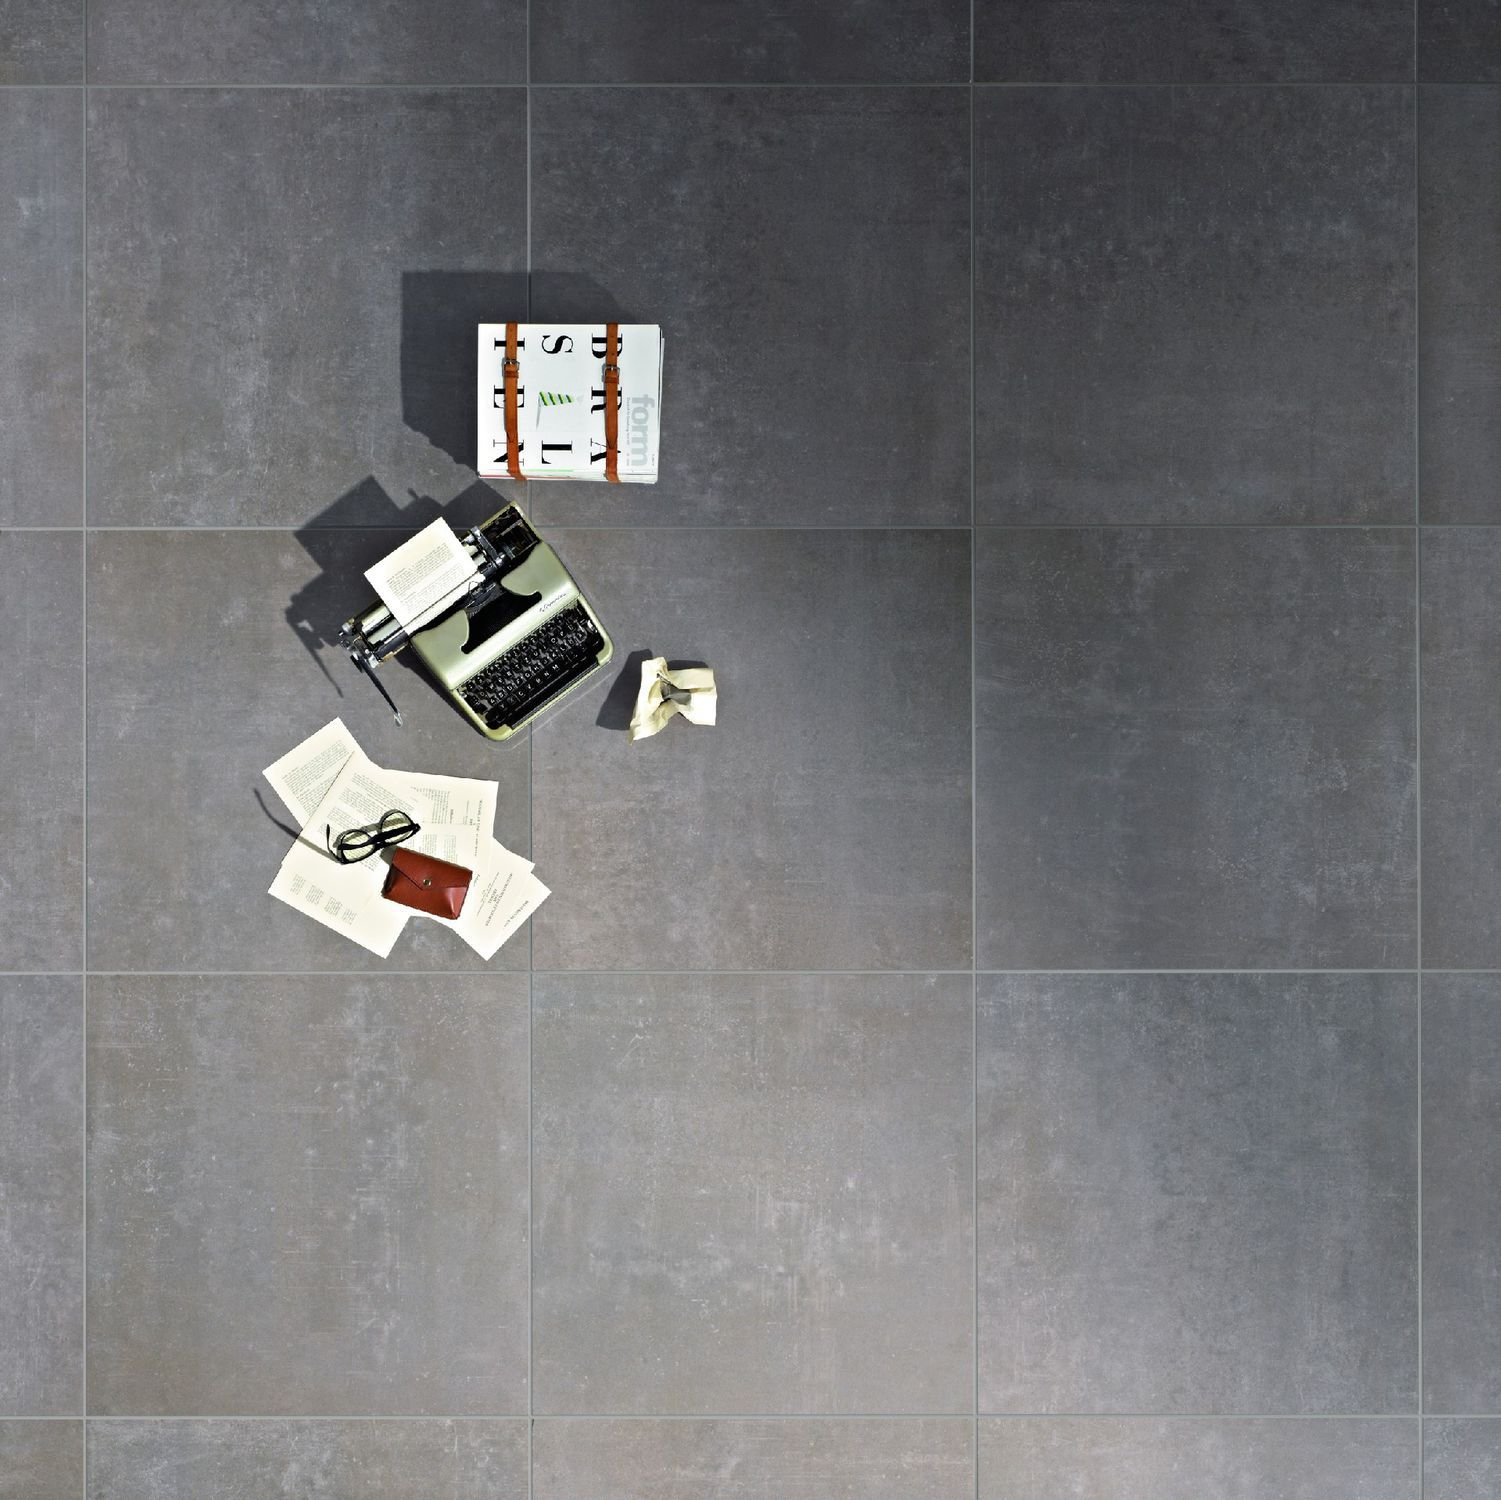 Indoor Tile / Living Room / Floor / Porcelain Stoneware. URBAN CULTURE  Steuler Fliesen